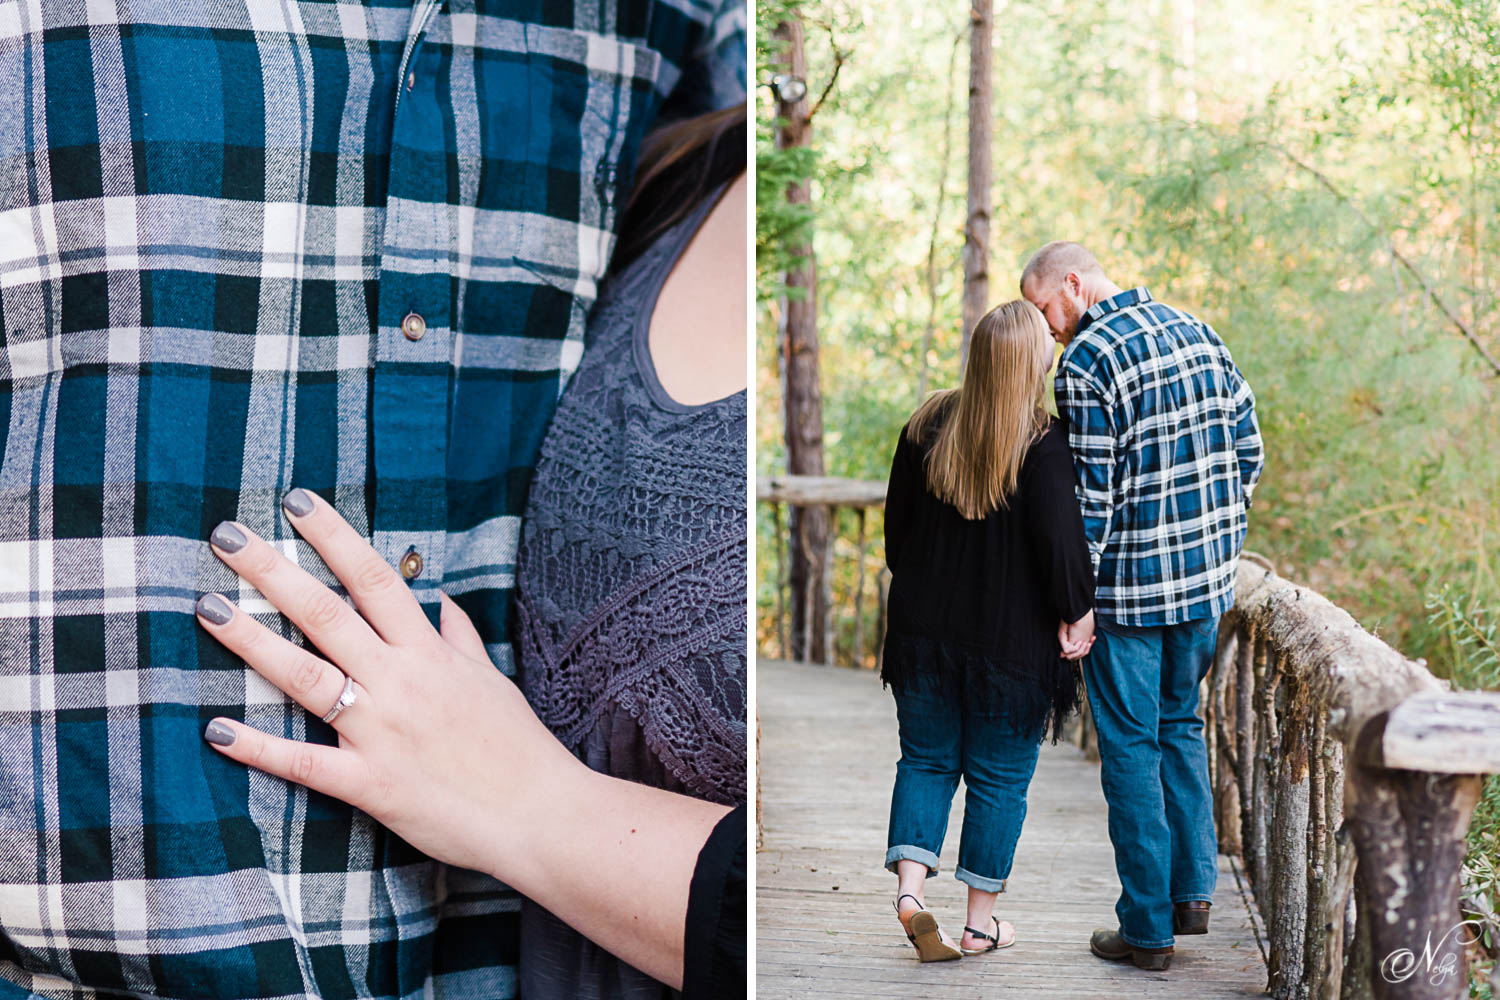 colose photo of engagement ring on girl's hand and couple walking on wooden walkway at indigo falls venue